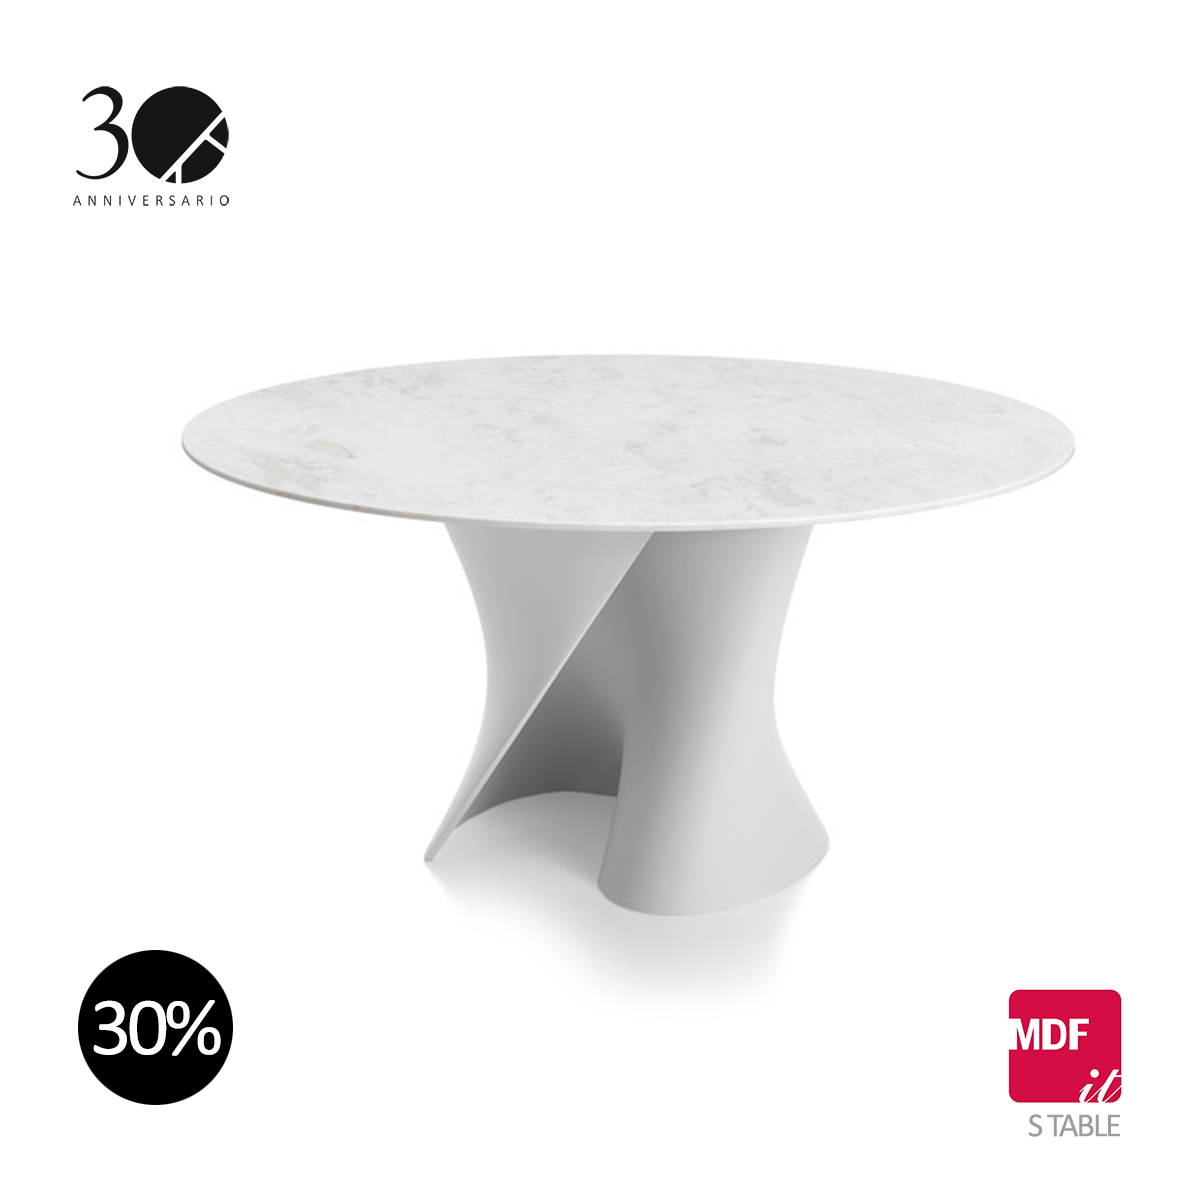 MDF - S TABLE